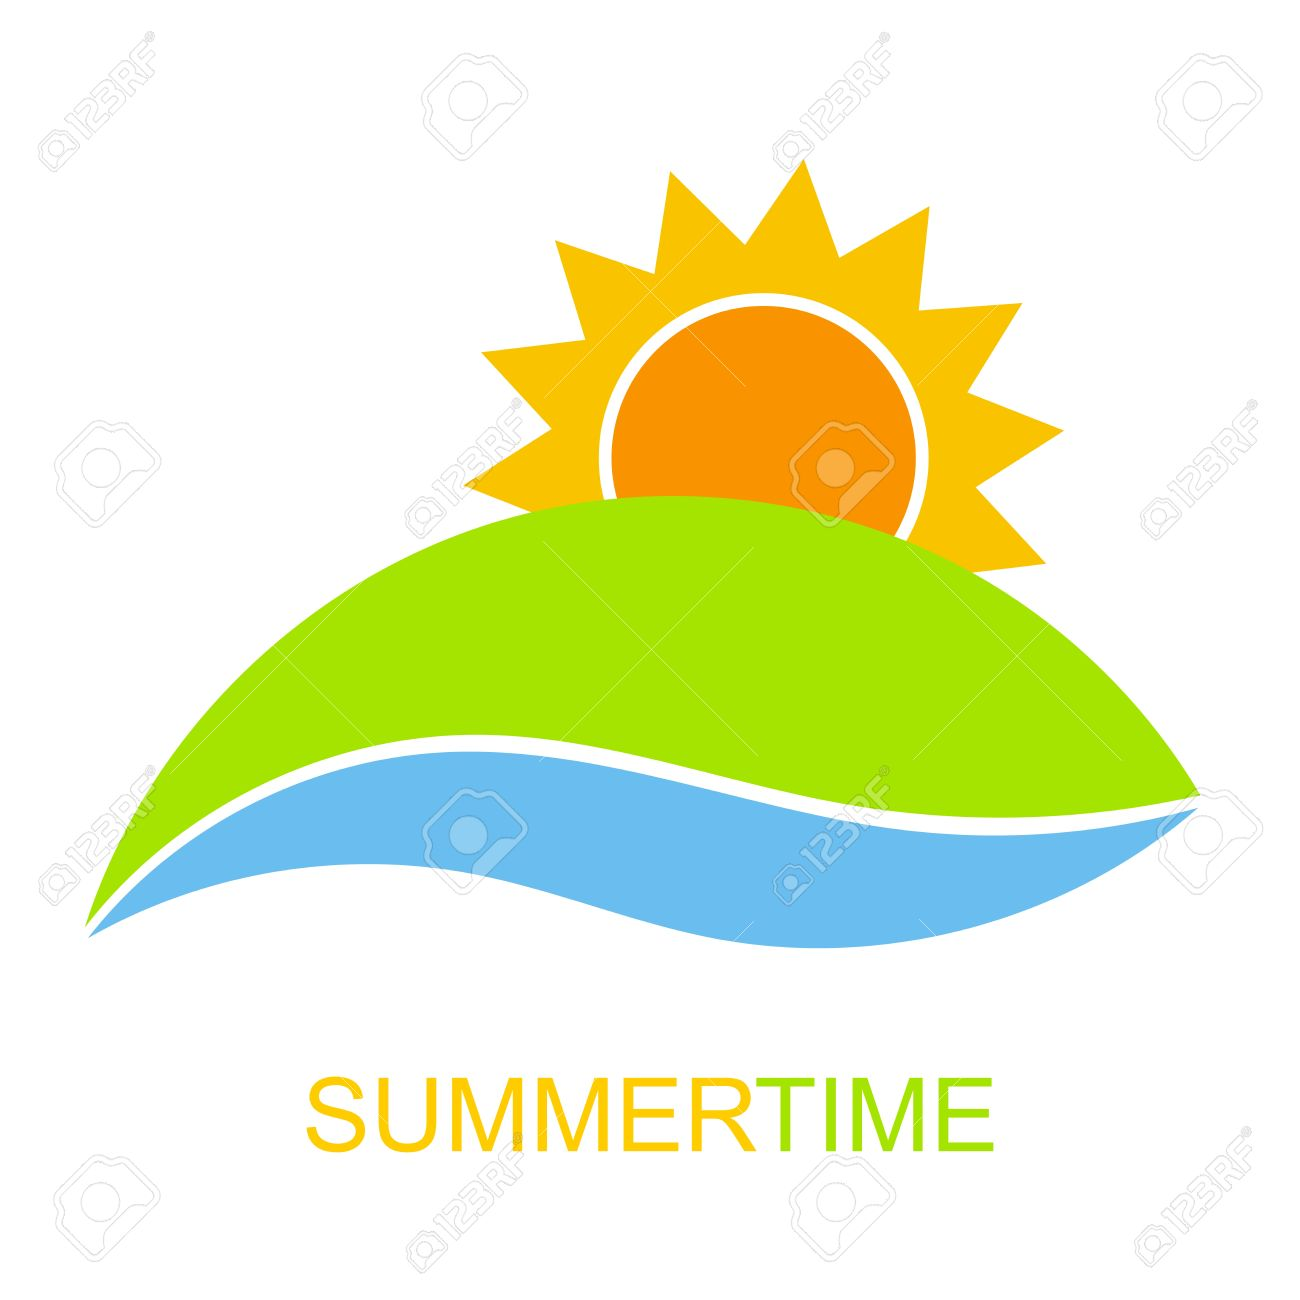 summertime icon vector sunrise over hill and river royalty free rh 123rf com Free Vector Mountain Sunrise Free Vector Mountain Sunrise